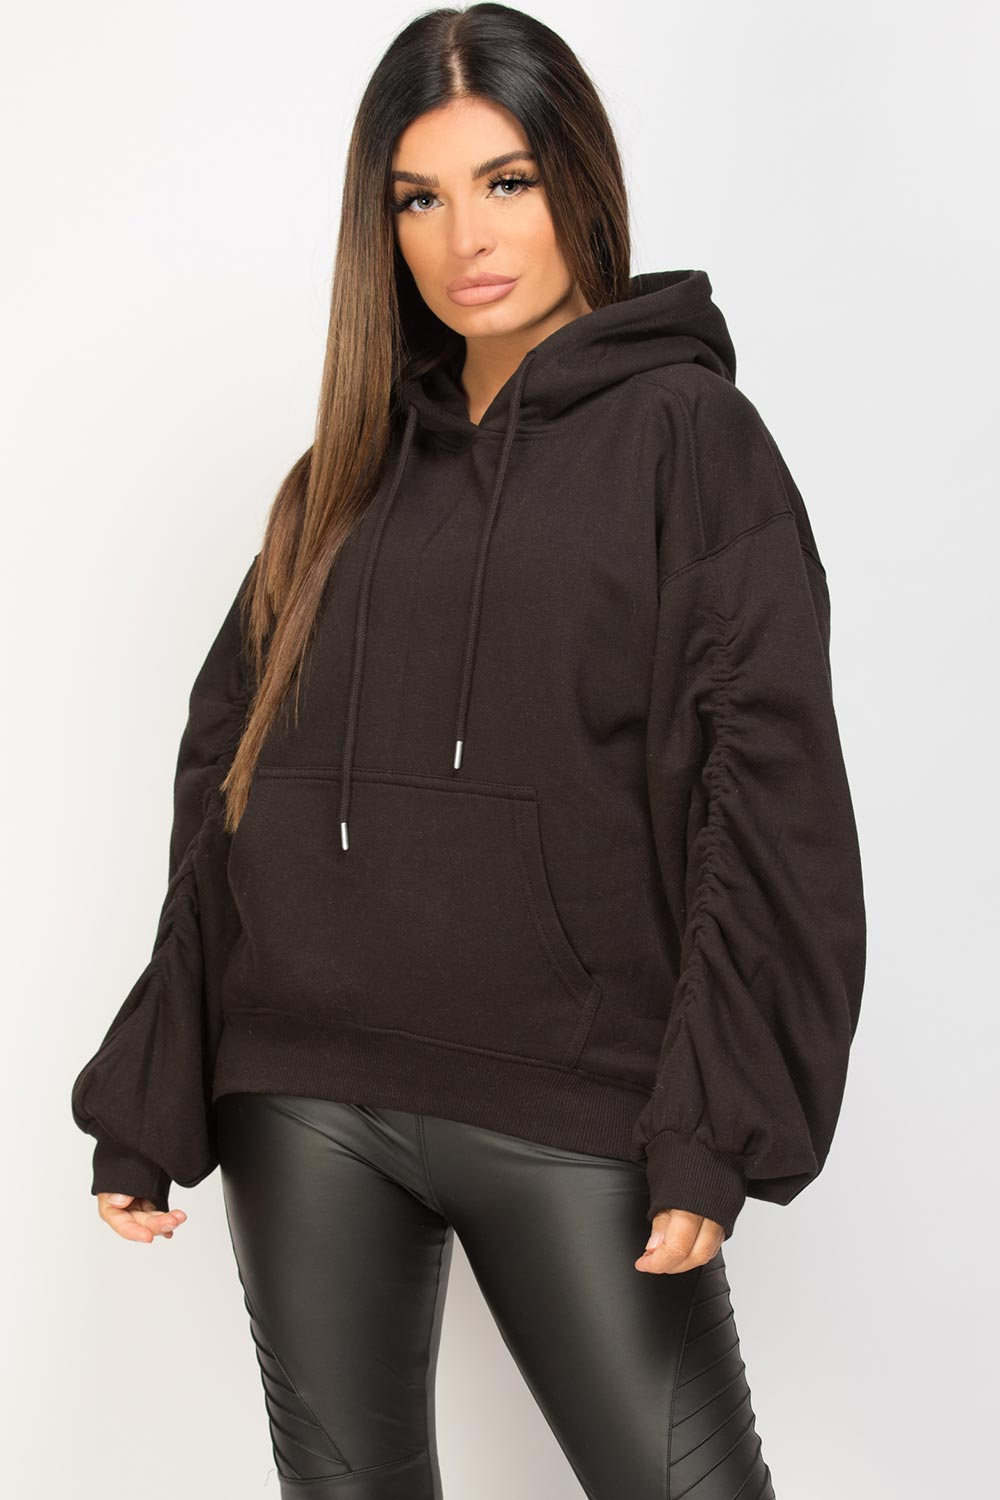 black oversized hoodie with ruched arms